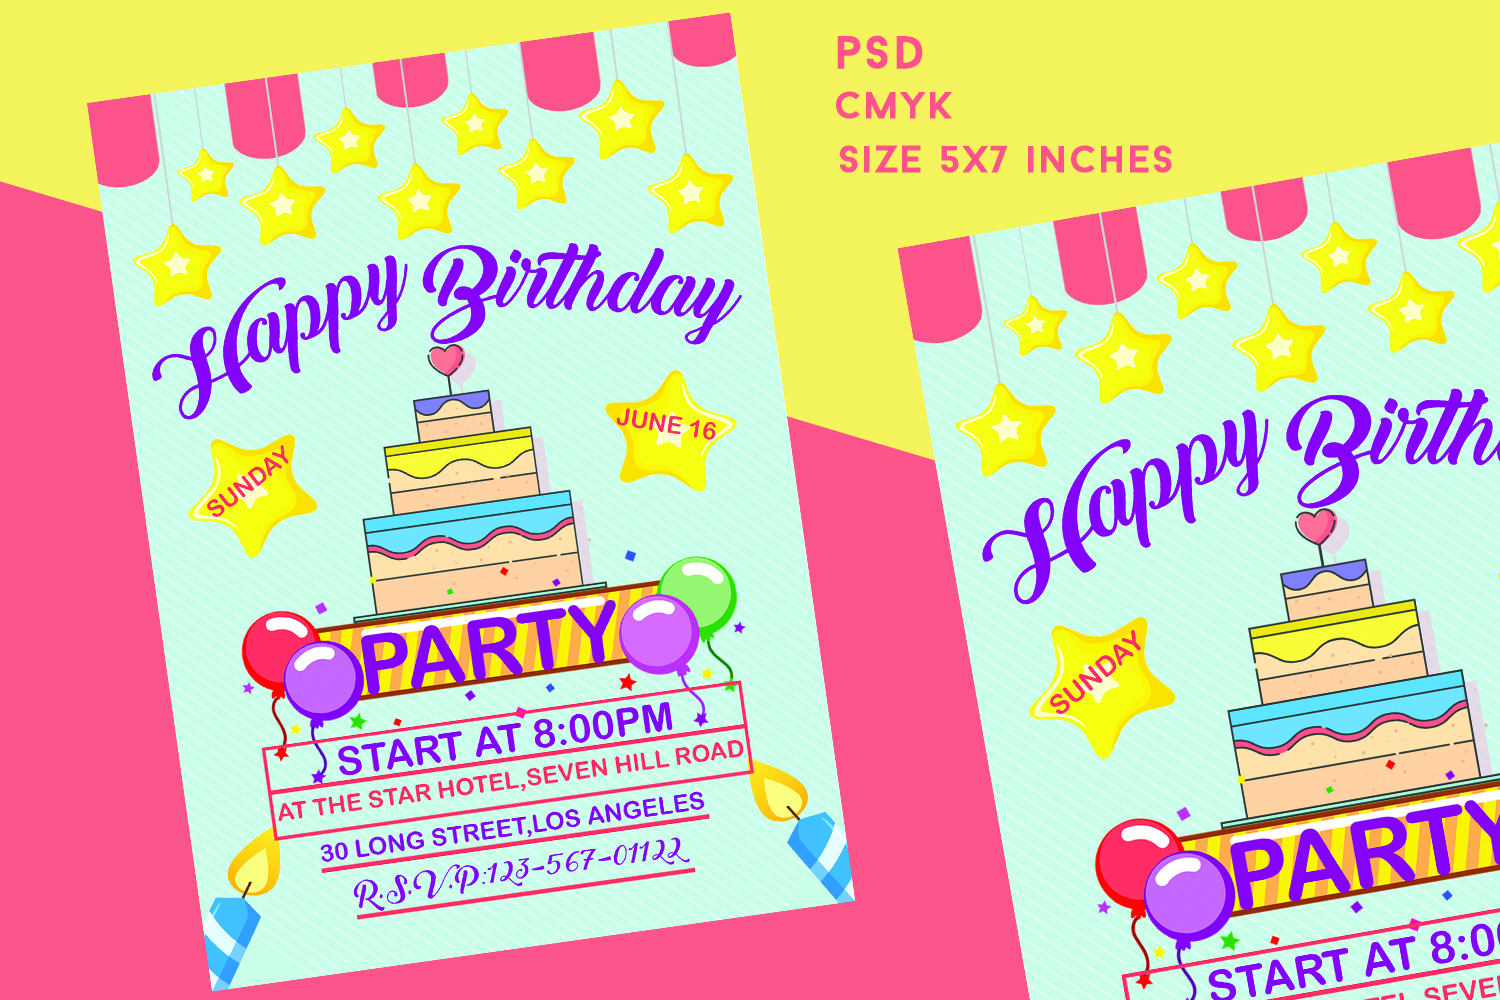 Swell Birthday Invitation Card 319946 Card Making Design Bundles Personalised Birthday Cards Paralily Jamesorg